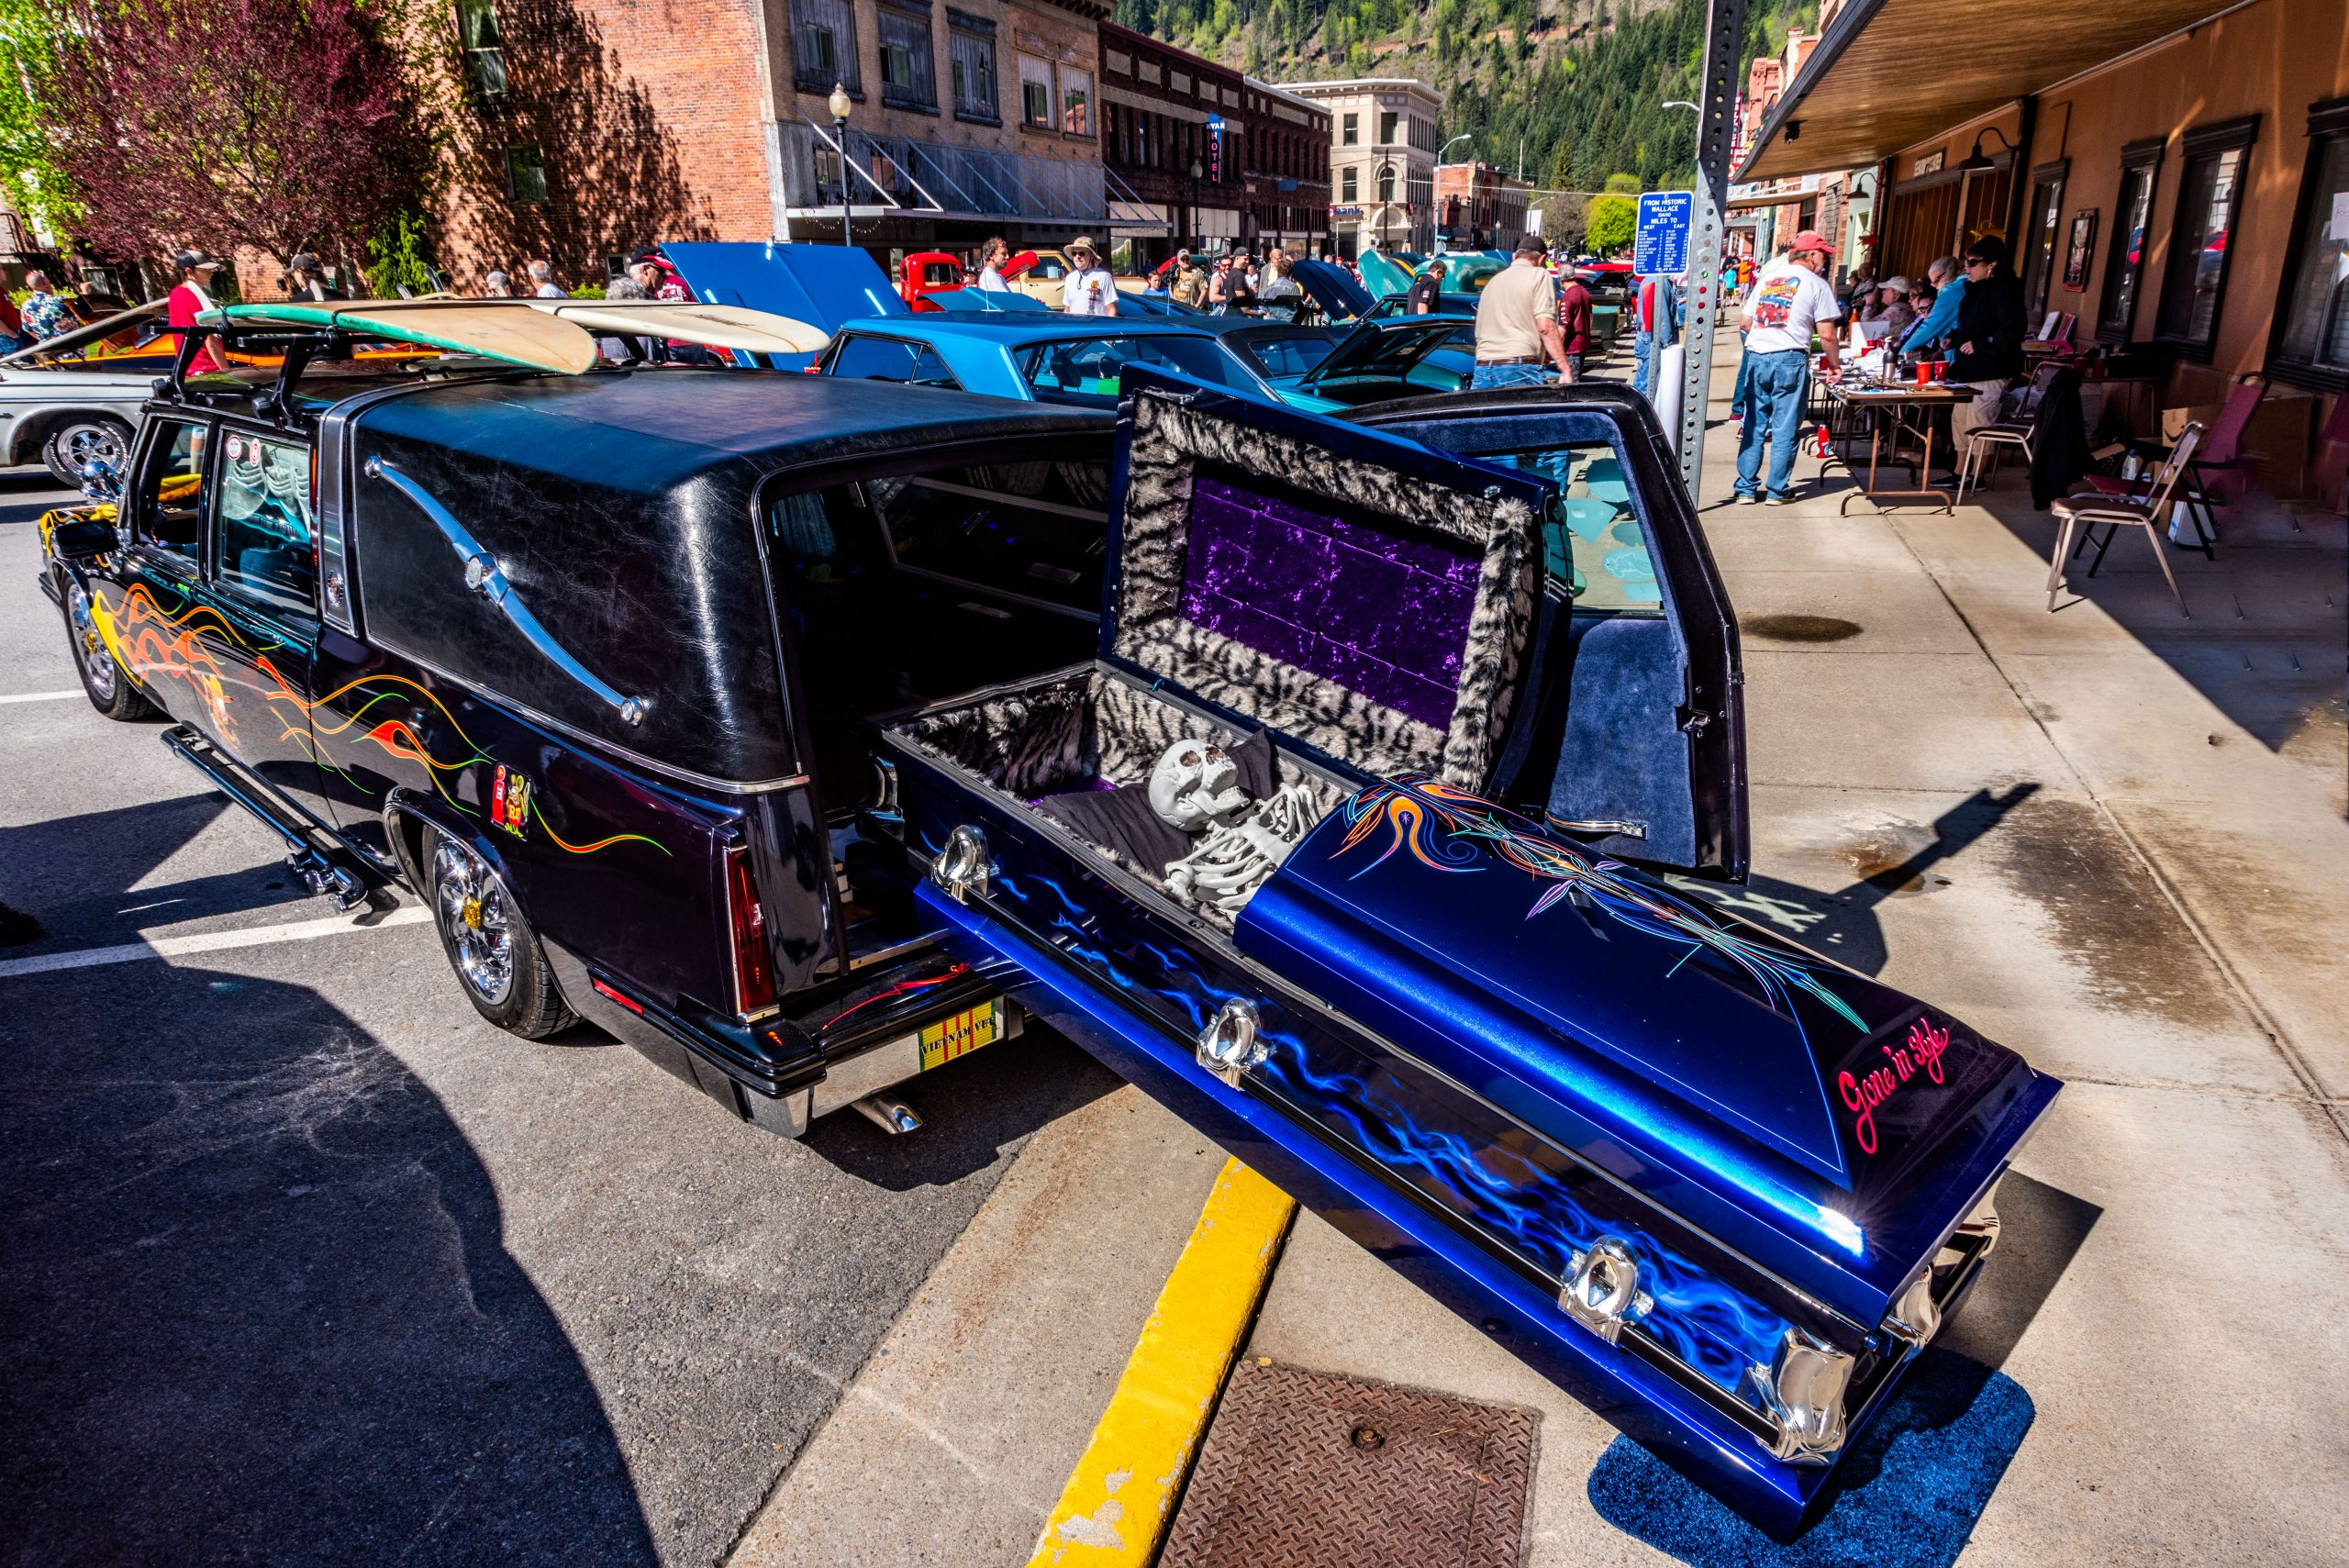 A highly customized hearse